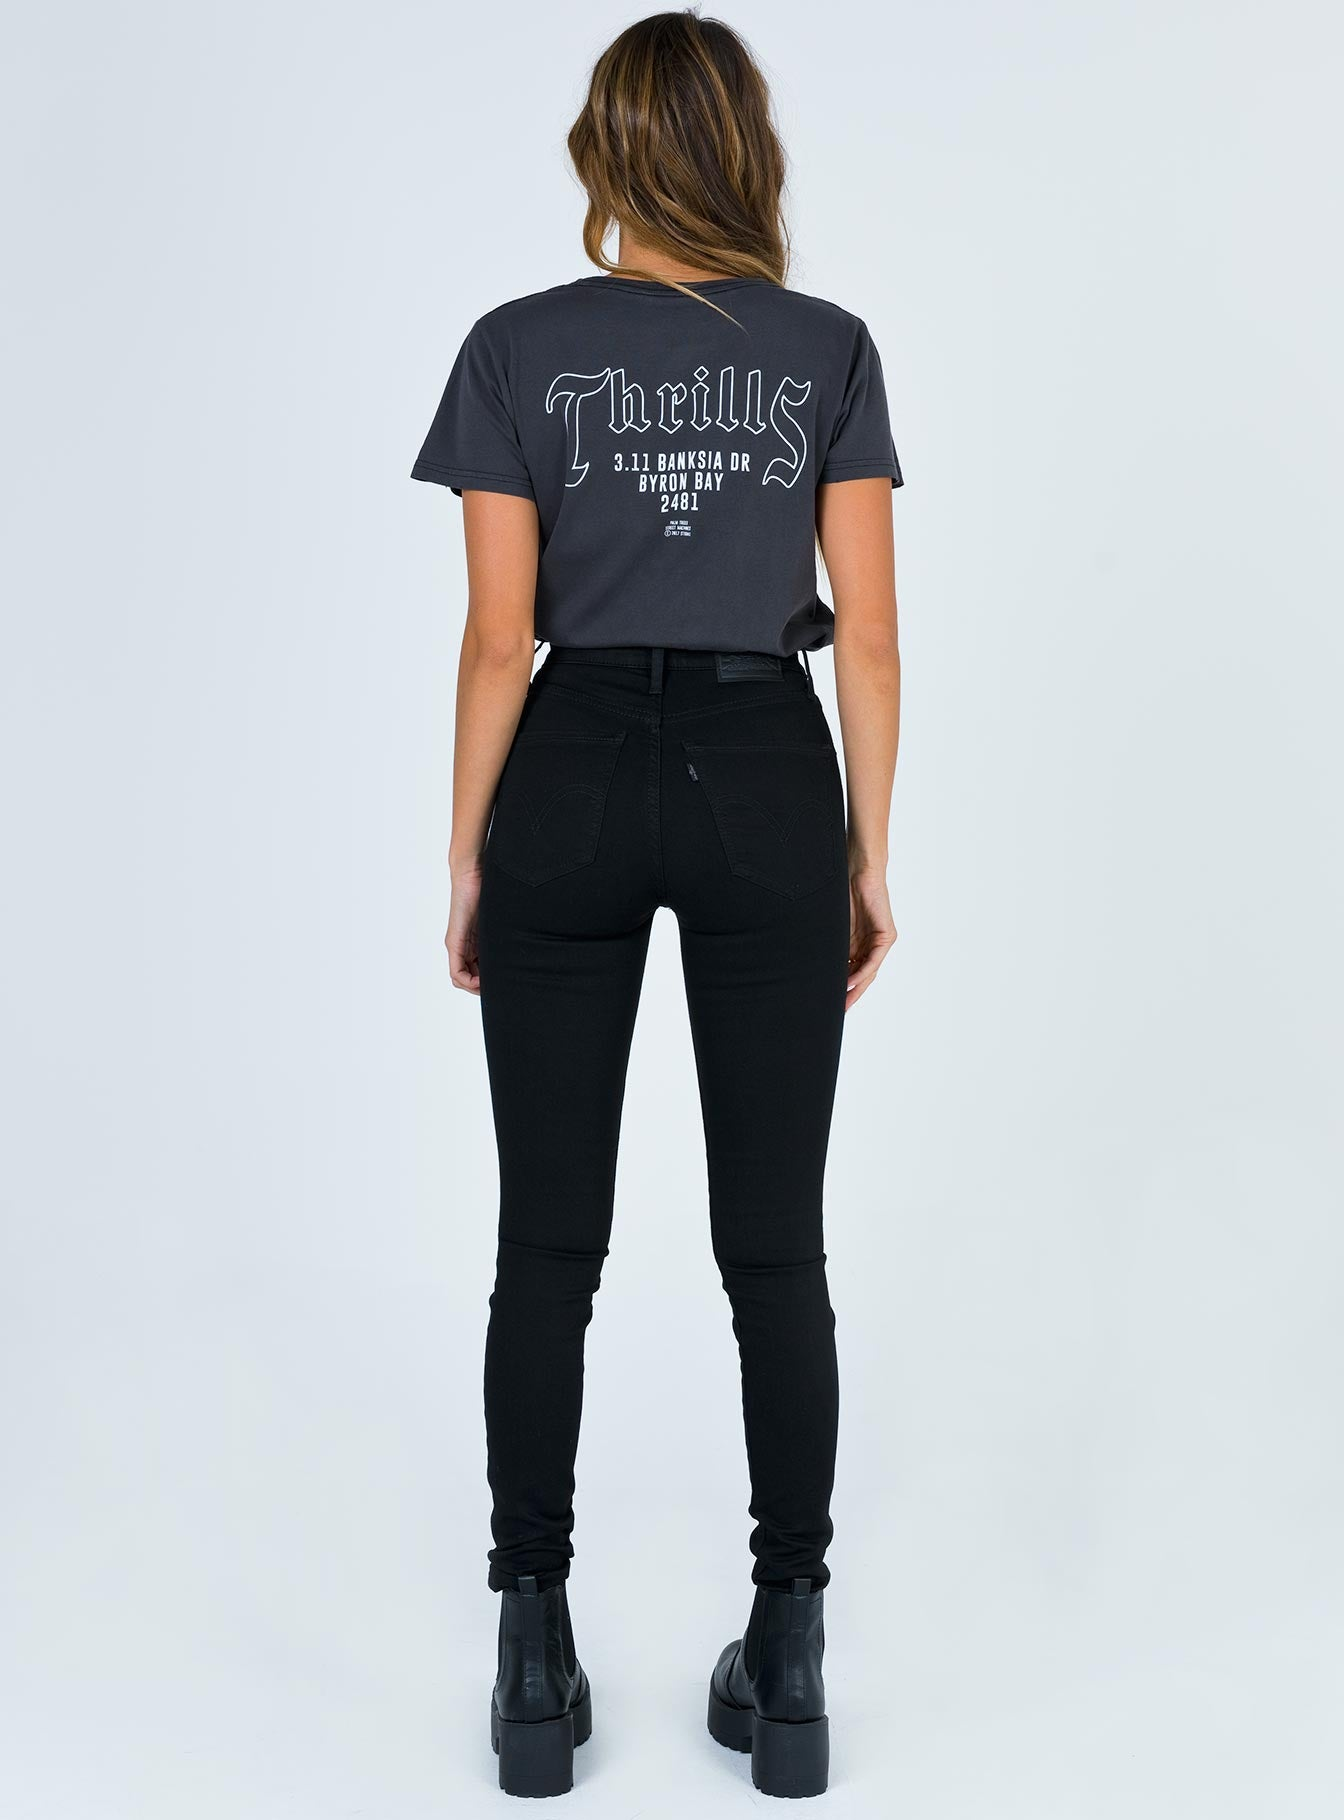 Levi's Mile High Super Skinny Black Celestial Jeans